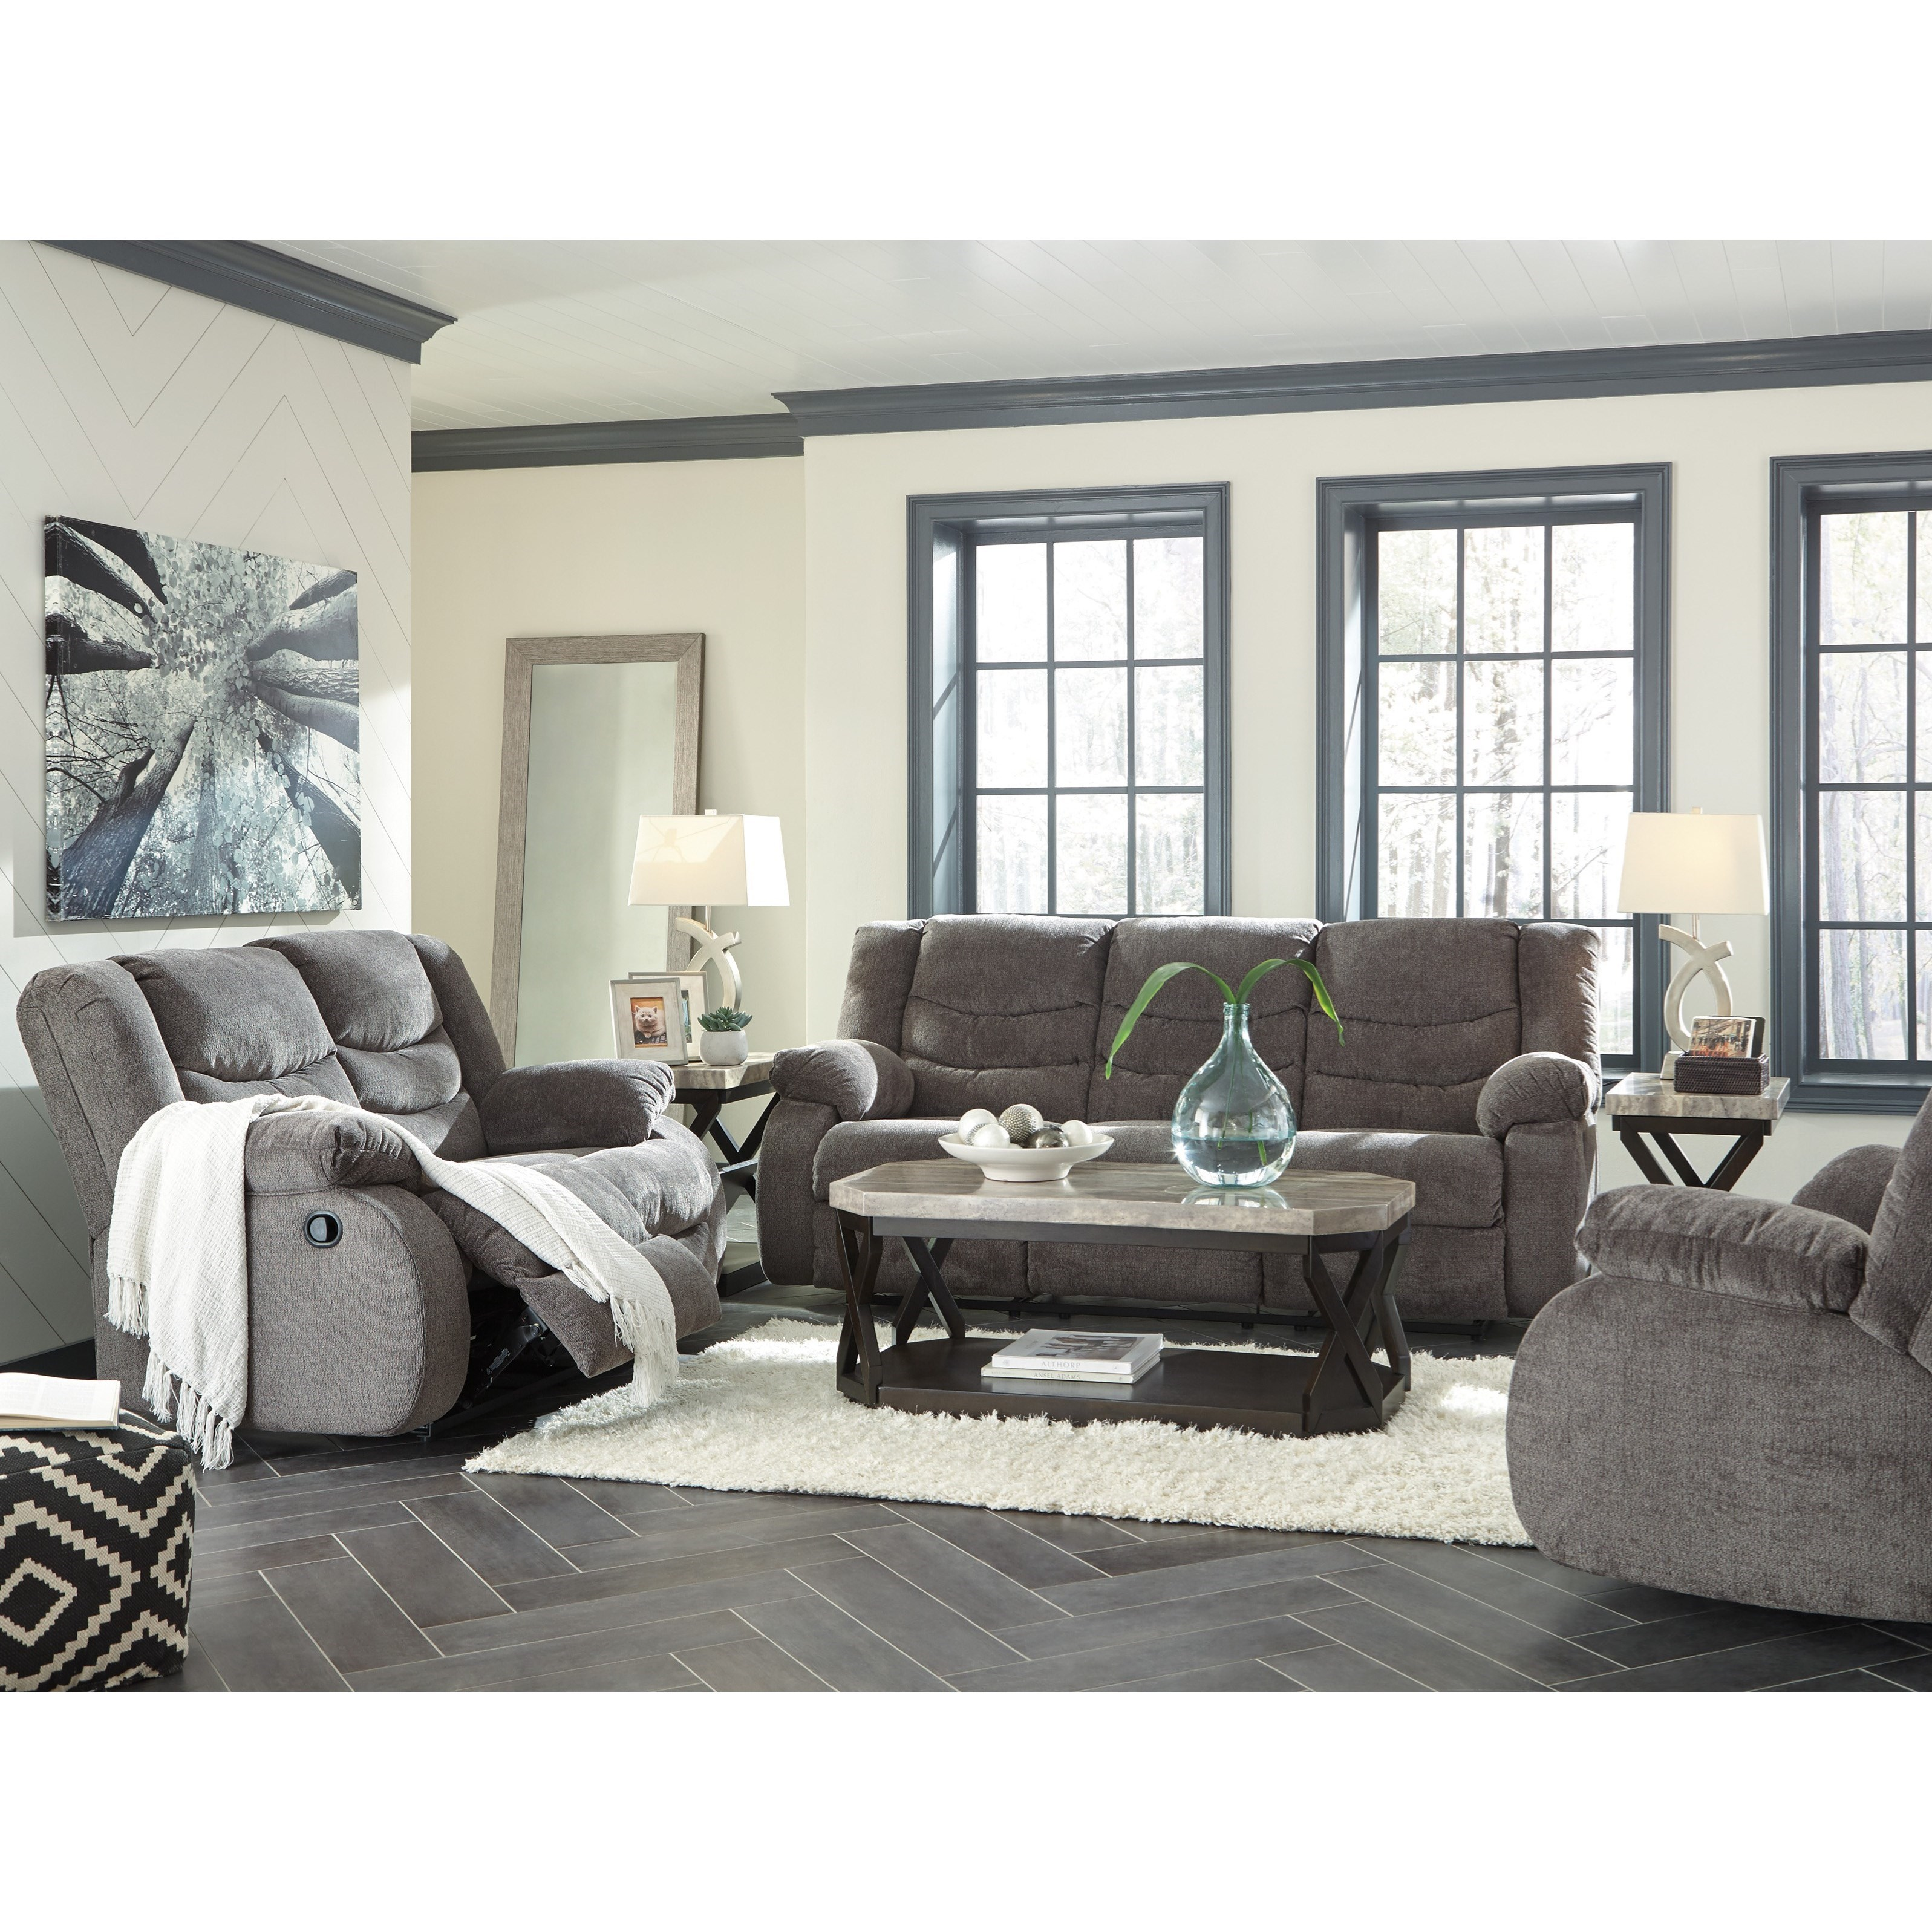 Tulen Reclining Living Room Group by Signature Design by Ashley at Darvin Furniture